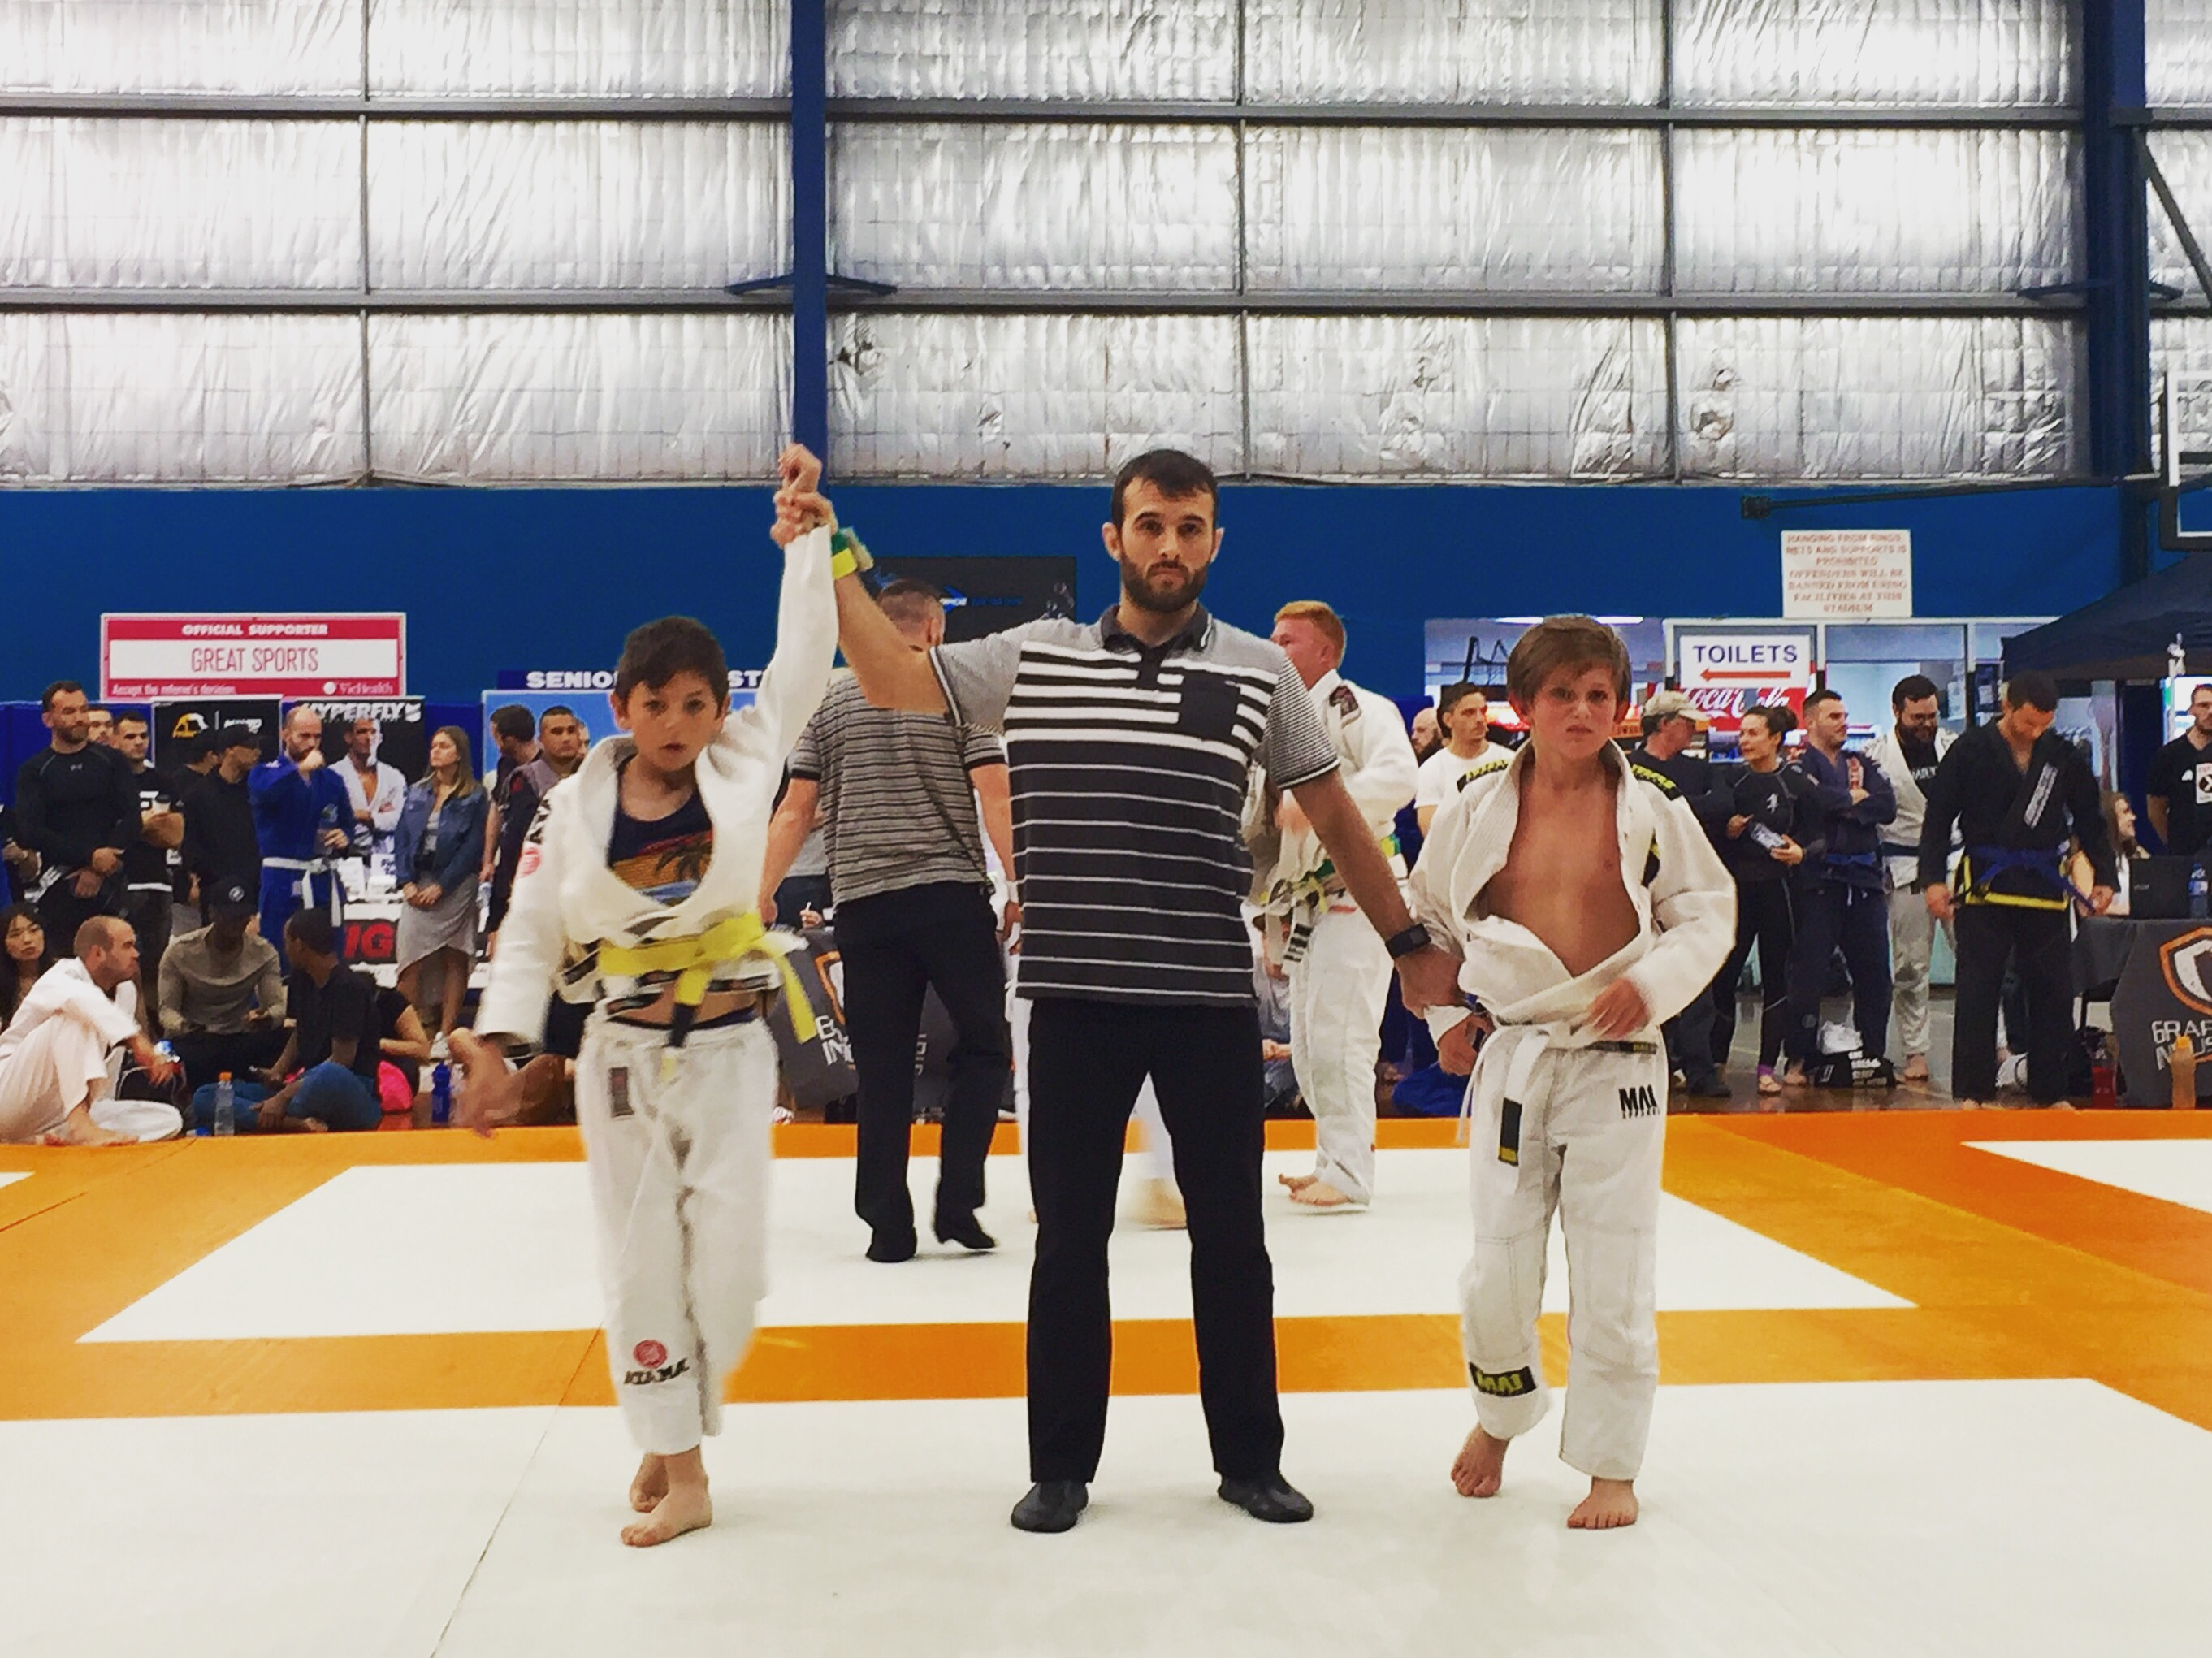 Coach Marcel Leteri Sasso de Oliveira​, refereeing at Grappling Industries in Melbourne